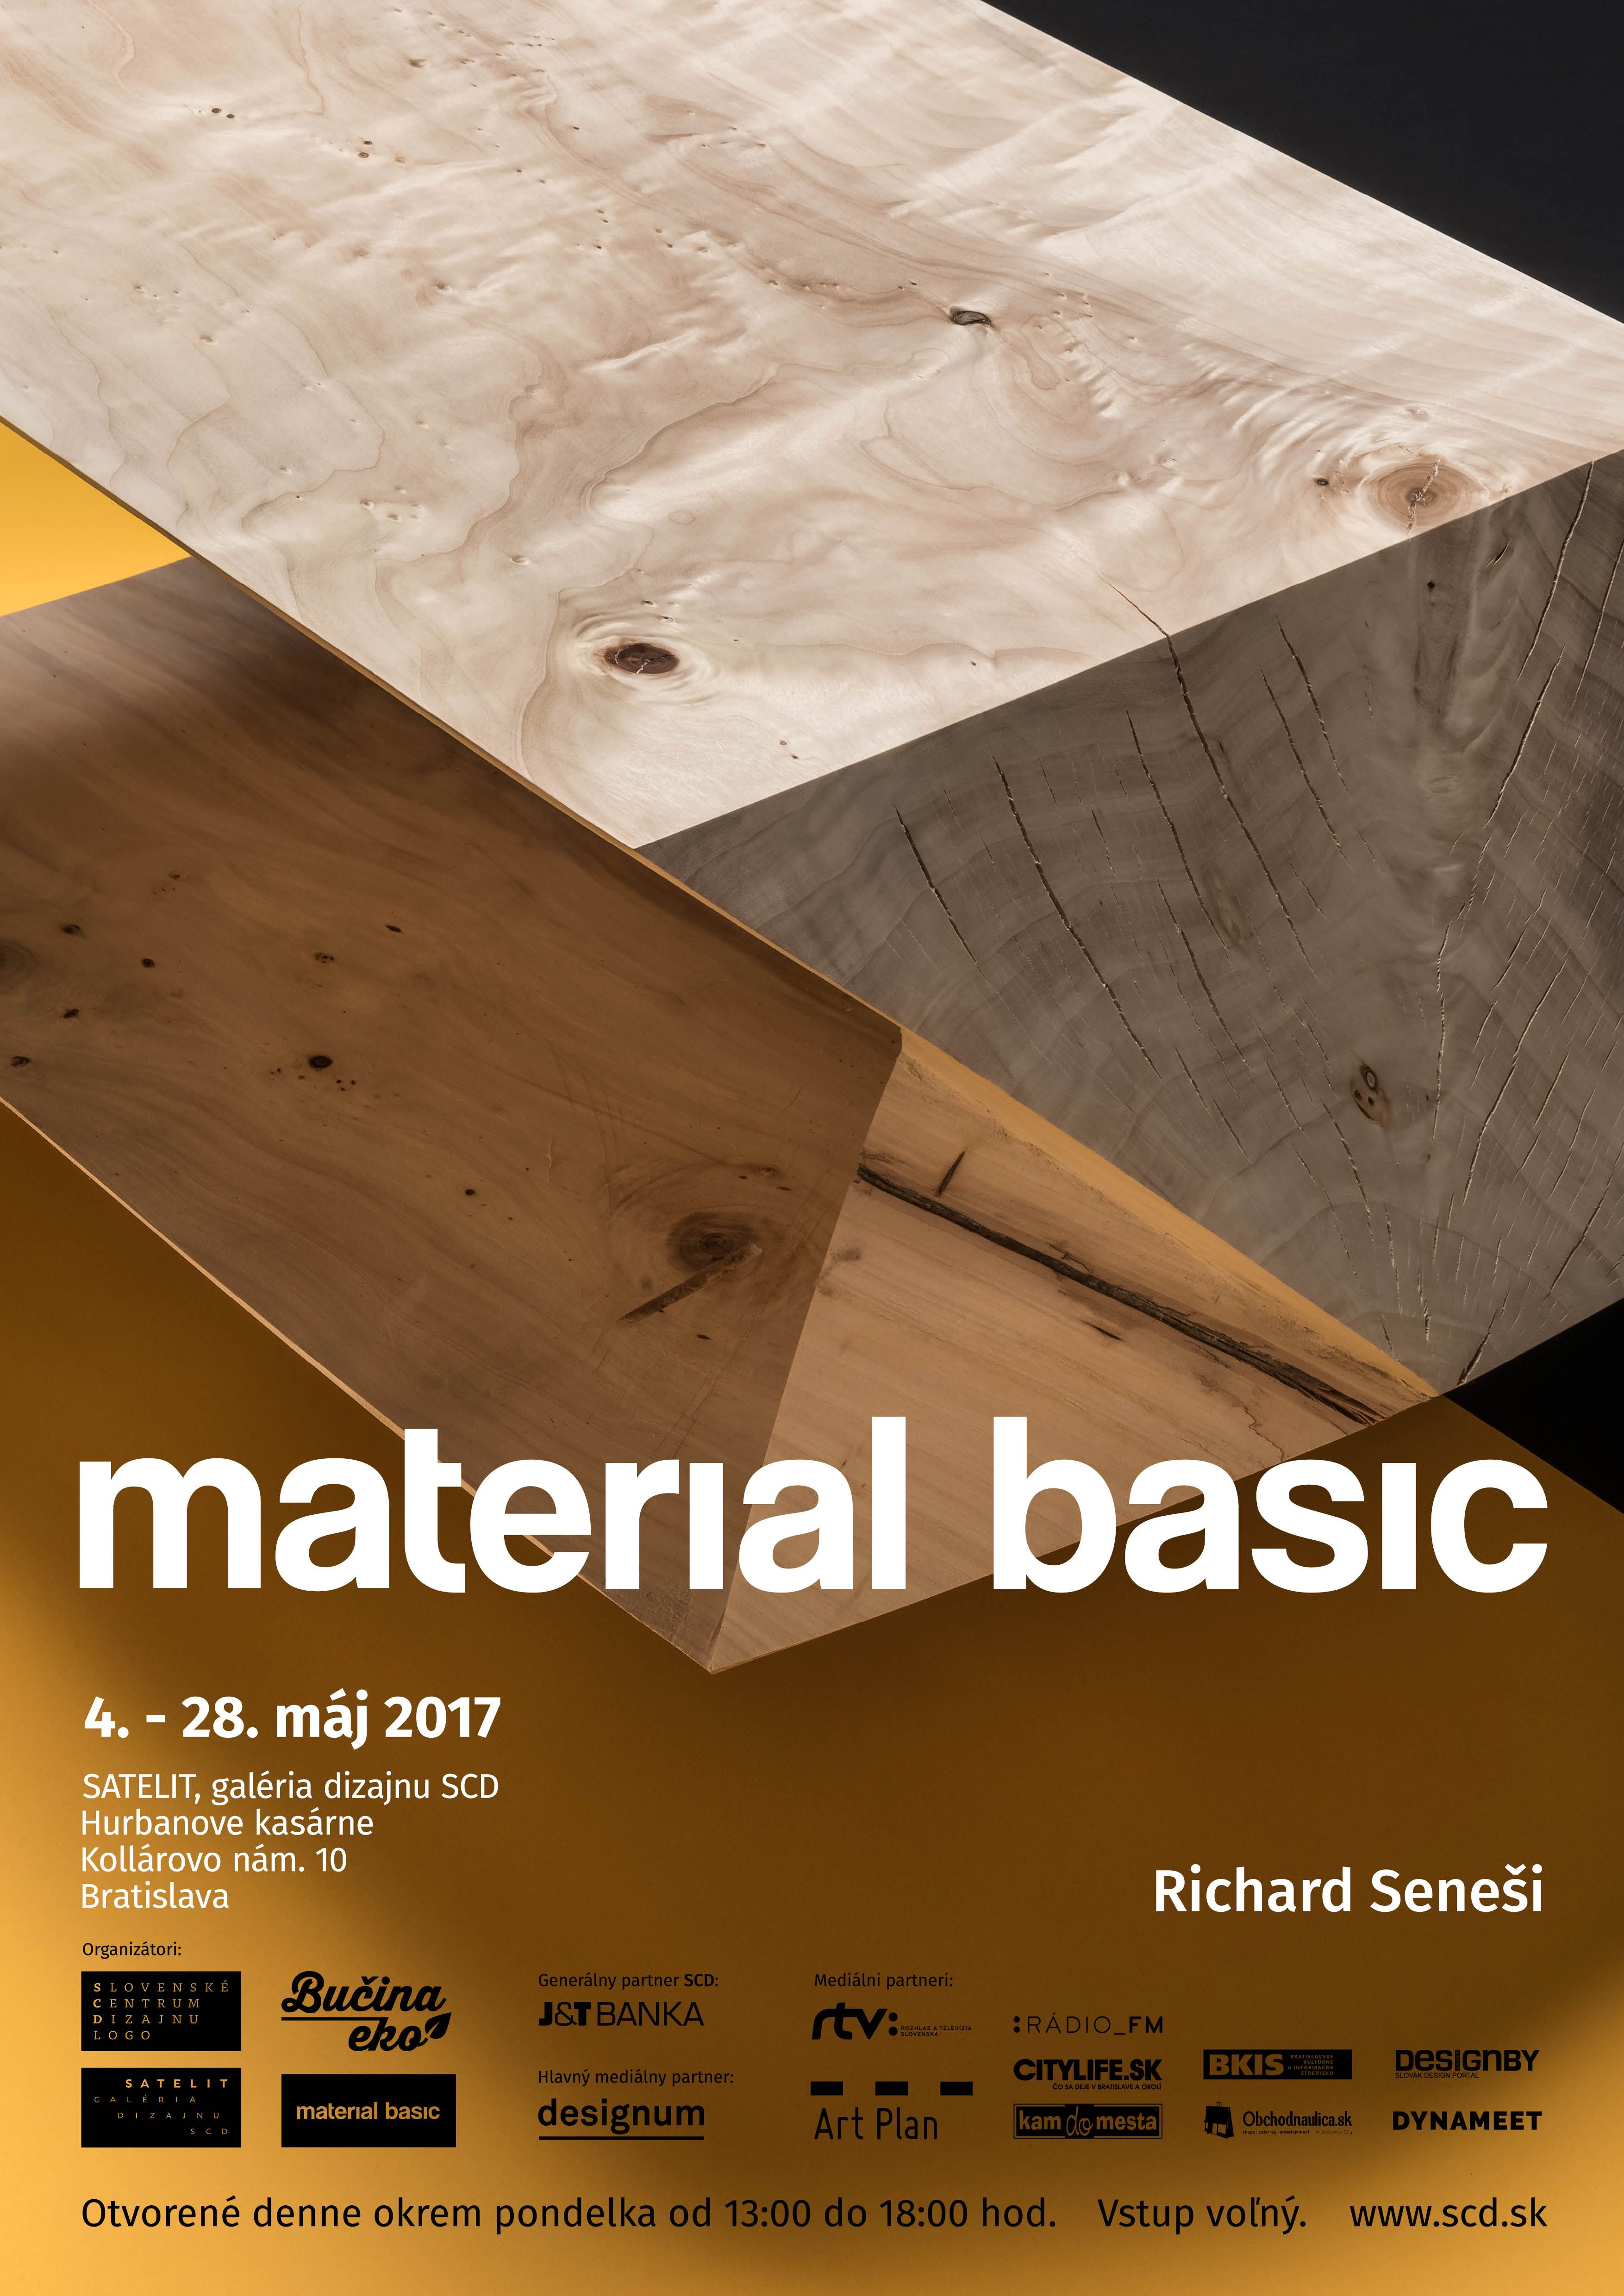 Richard Seneši - material basic